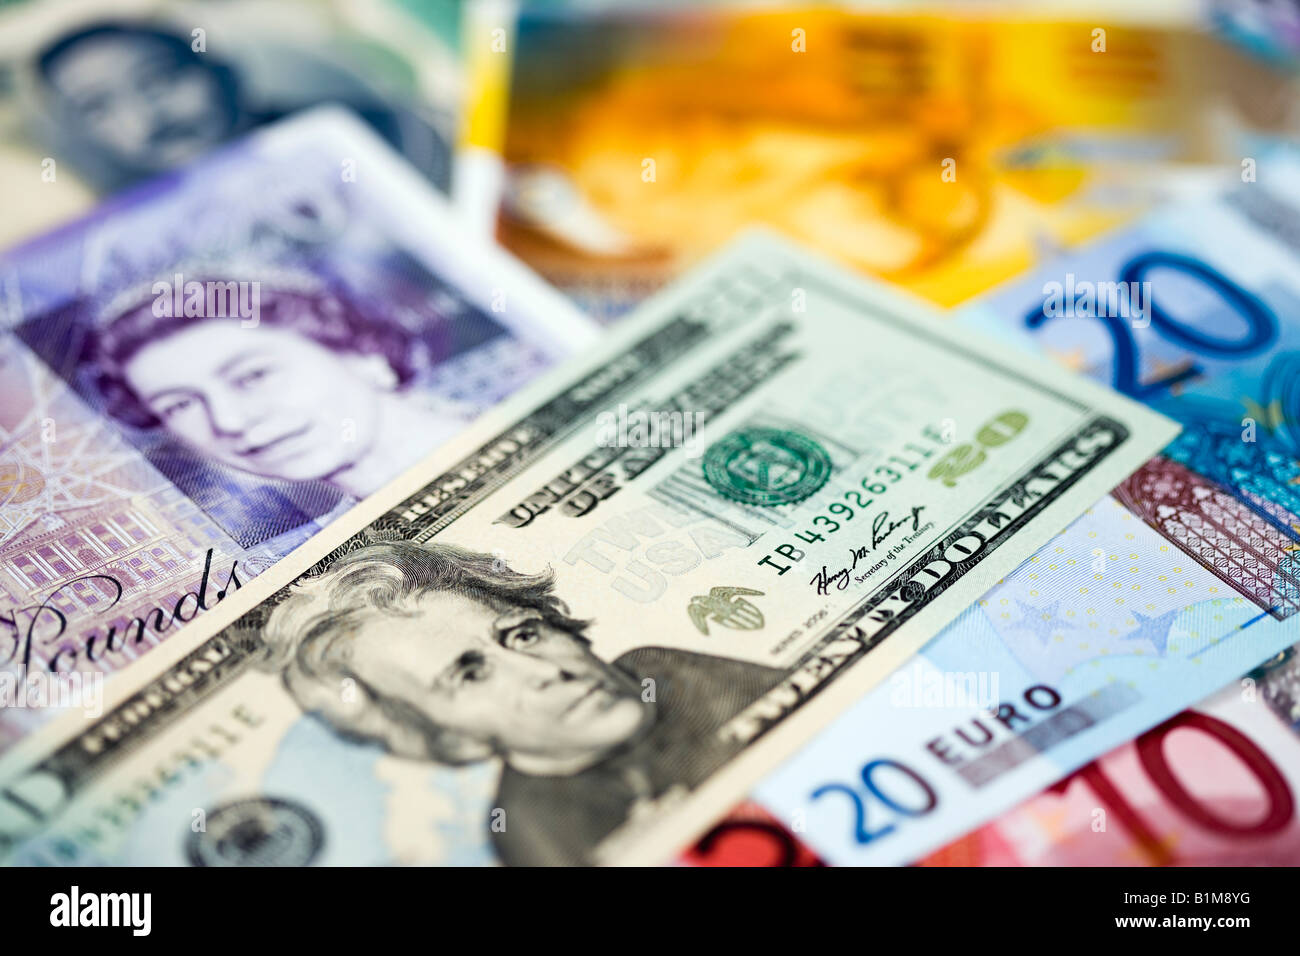 montage of international currency stirling usd and euro prominent stock image